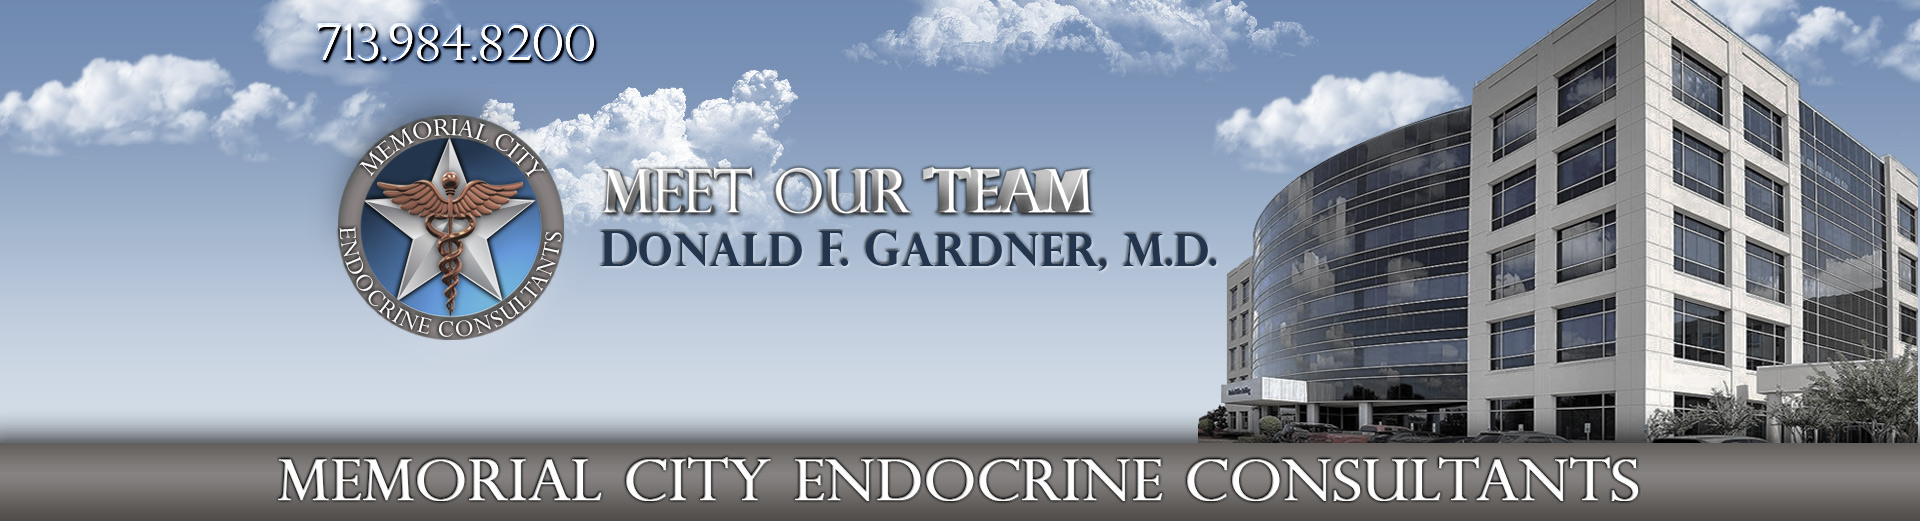 Donald F  Gardner, M D  - Memorial City Endocrine Consultants